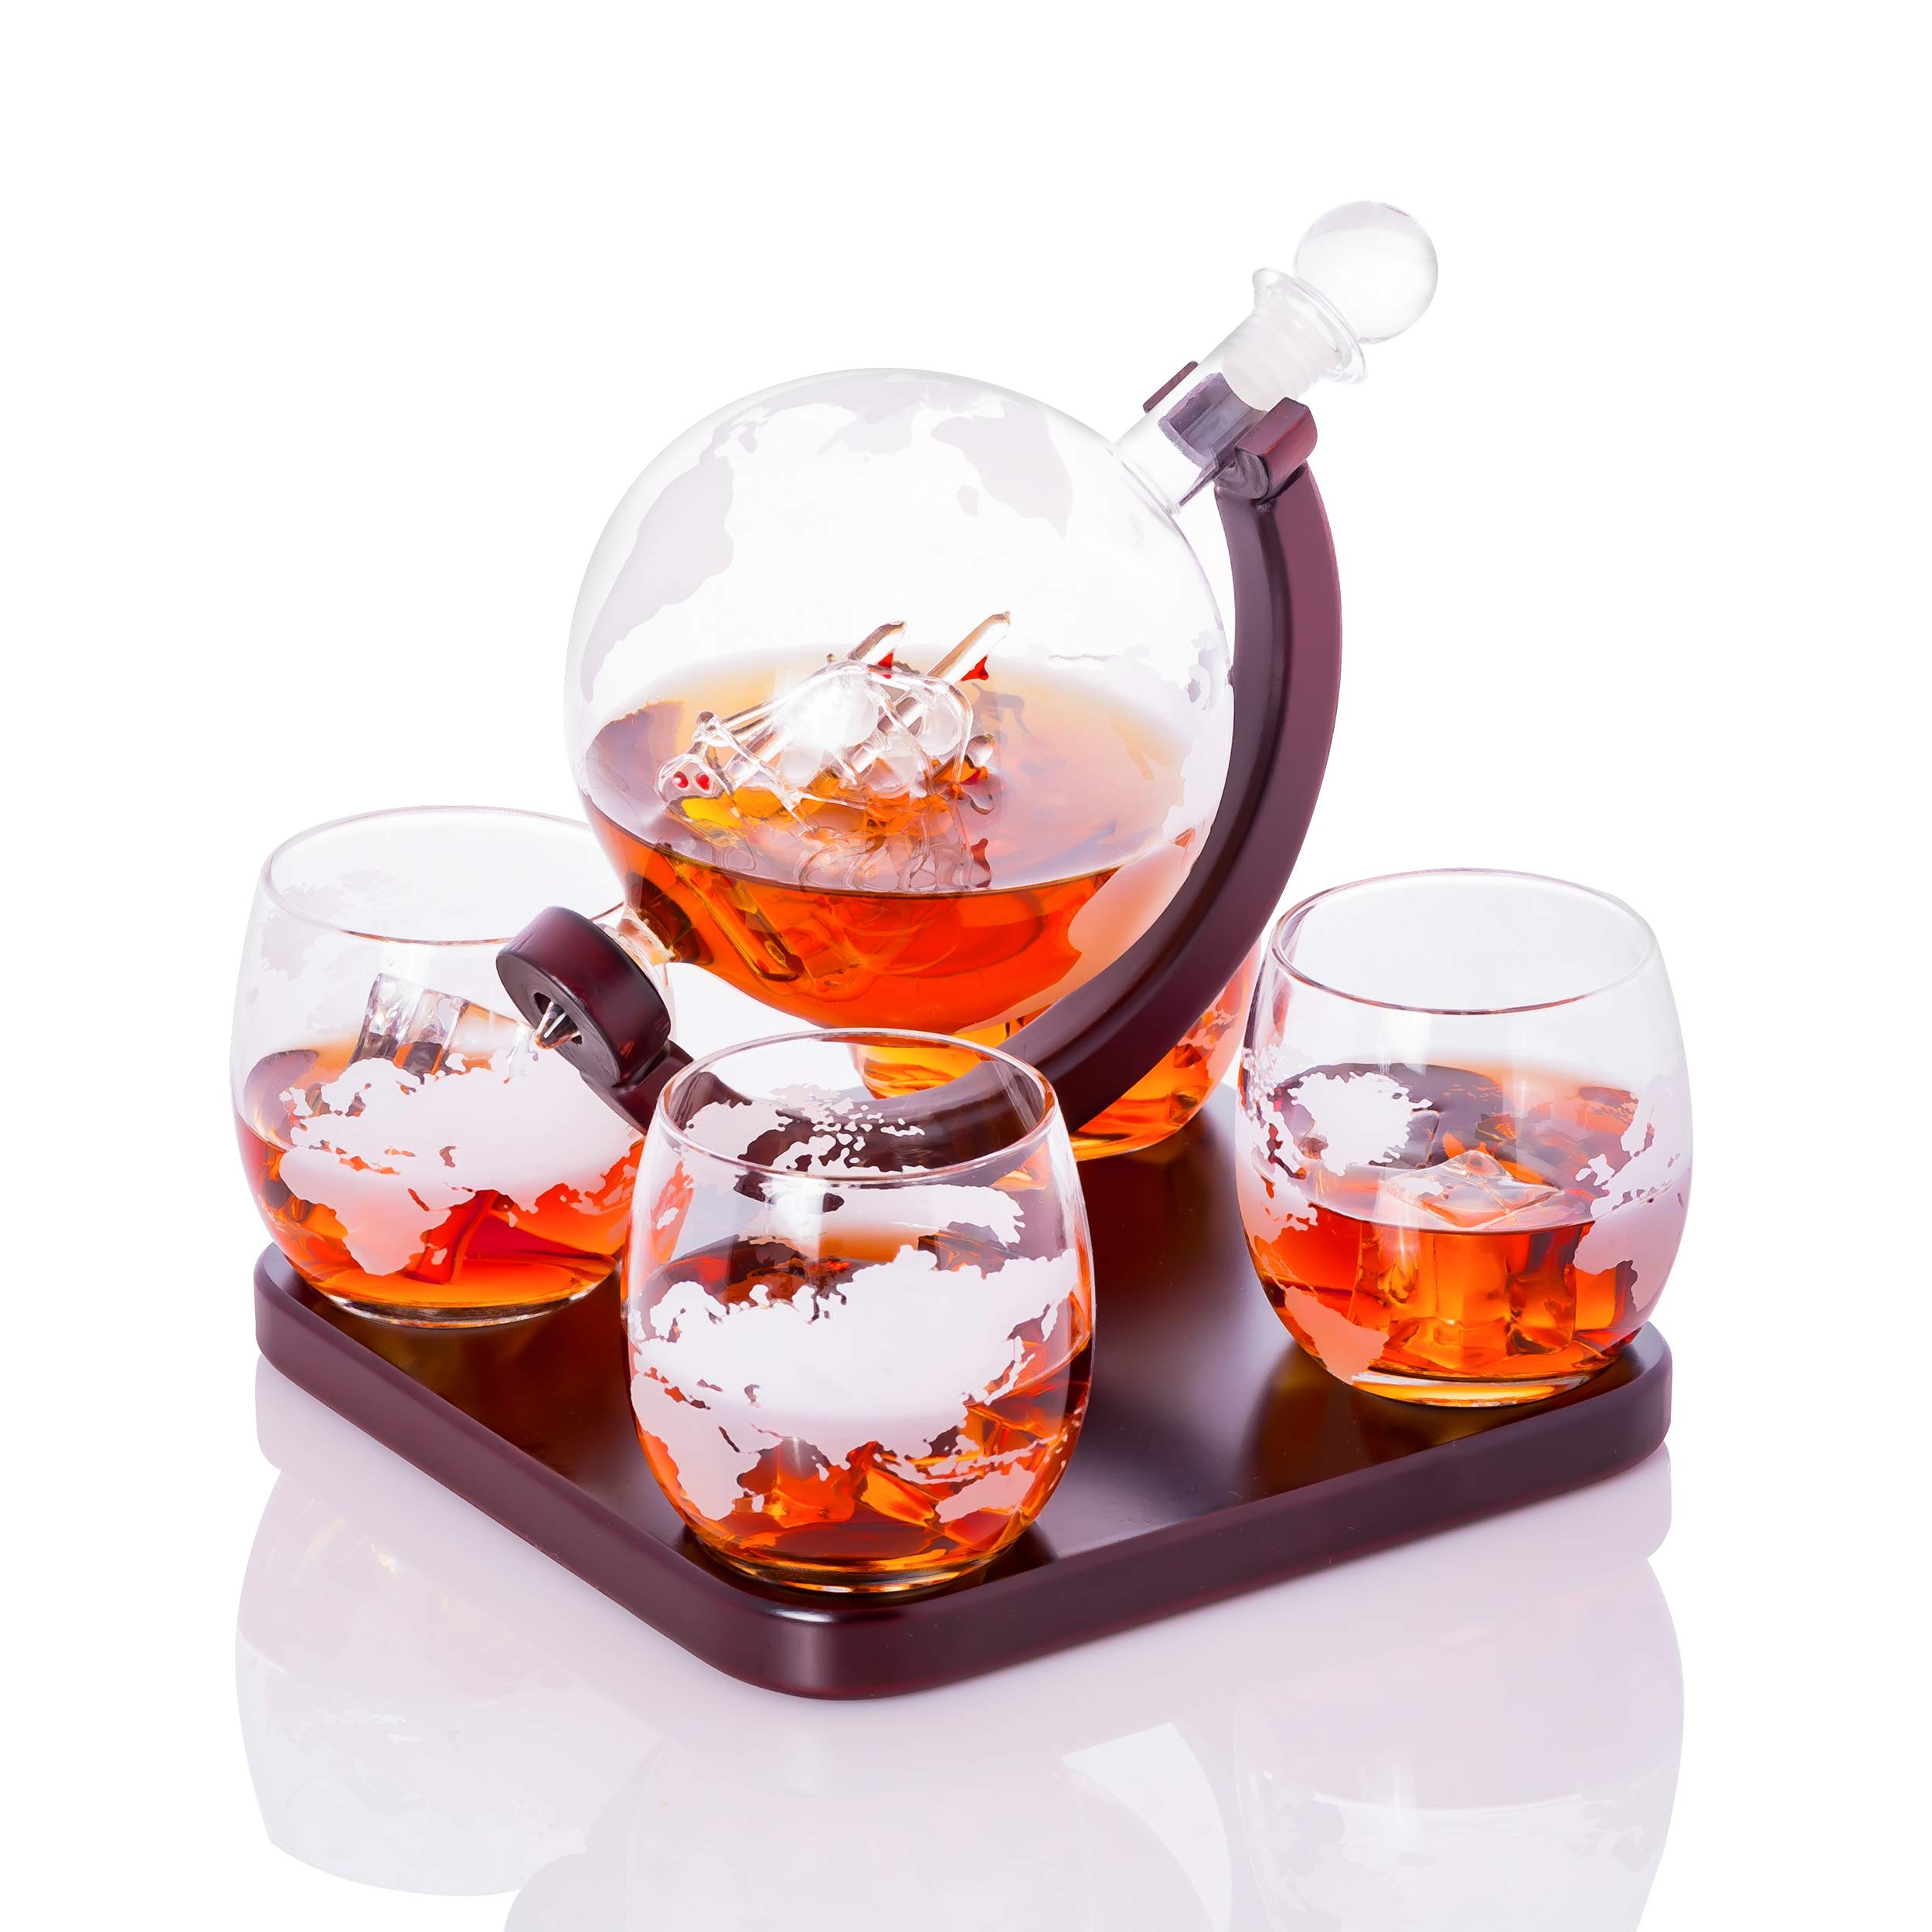 Old World Handblown Artisan Etched World Globe for Whiskey Scotch Bourbon and Fine Spirits Decanter Carafe 850mL with a Beautiful Glass Handmade Pirate Ship Inside by Sunday Rock